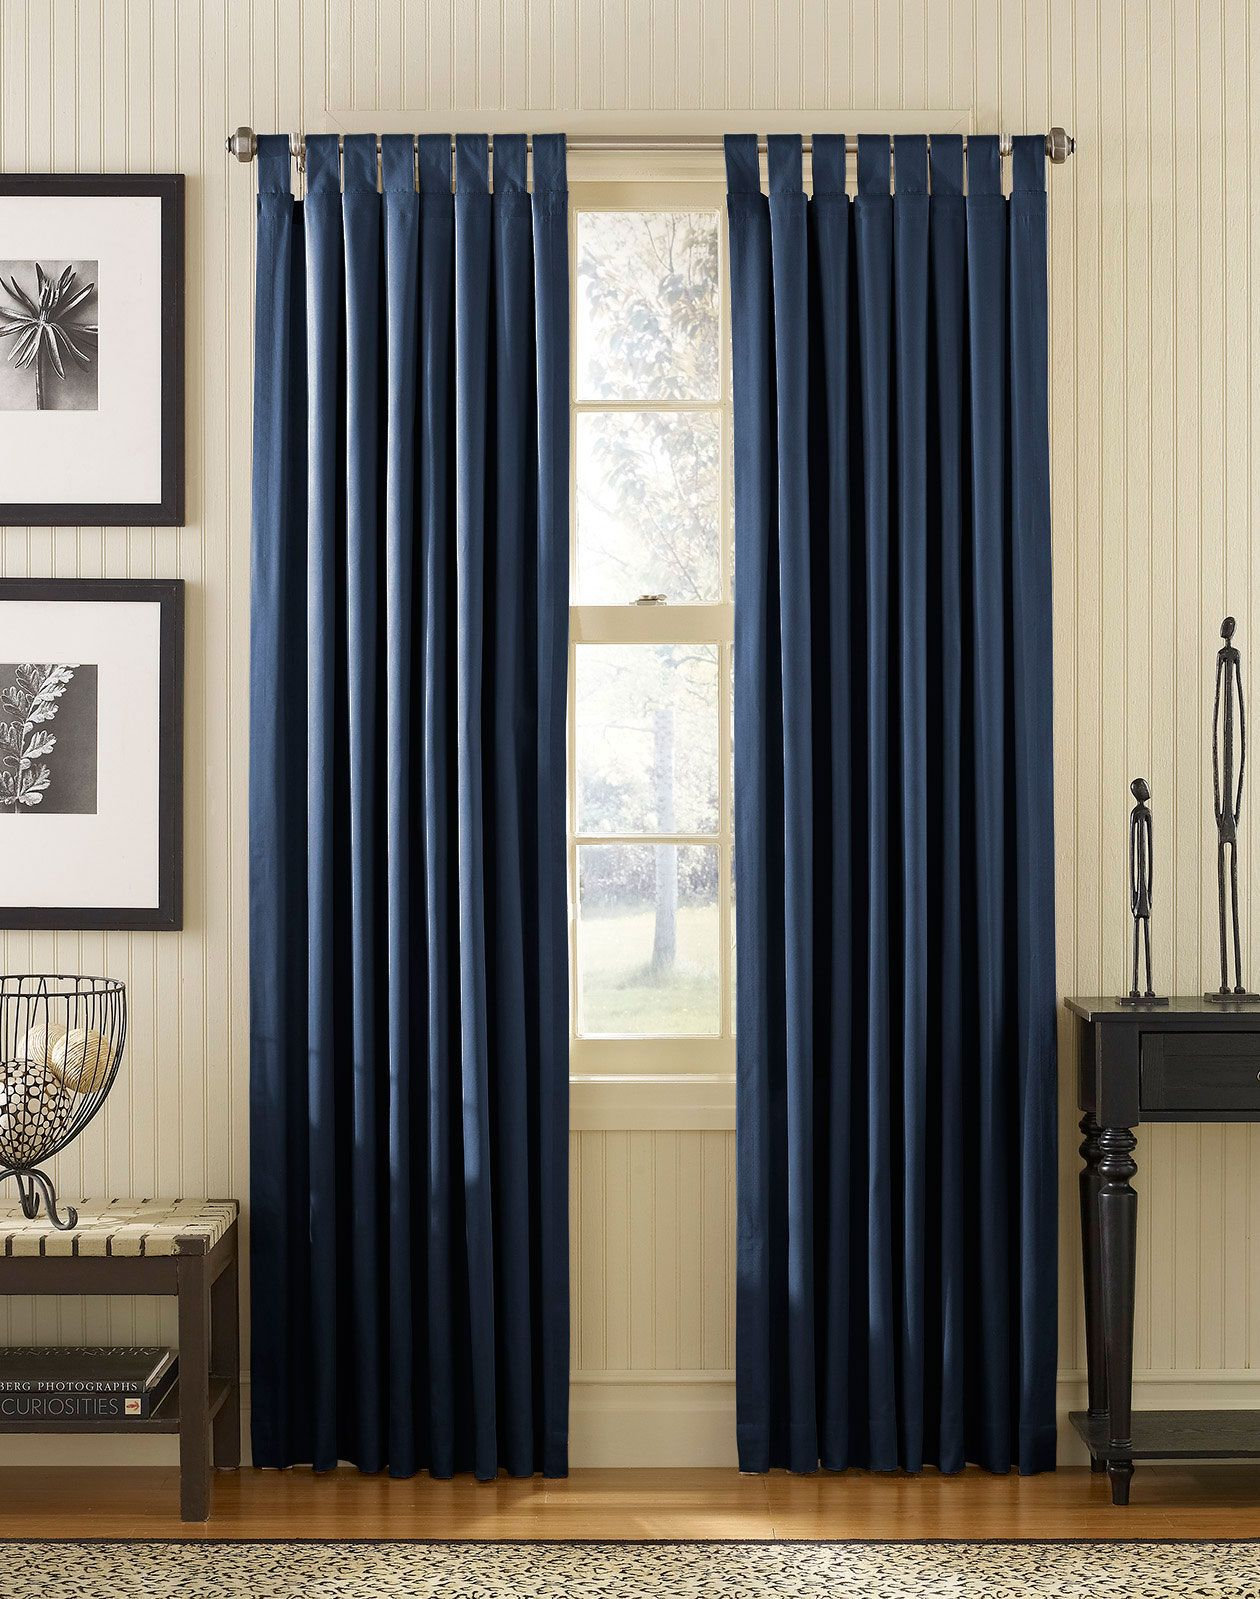 Navy Blue Bedroom Curtains Curtain Designs For Bedroom Curtains Living Room Curtains Bedroom